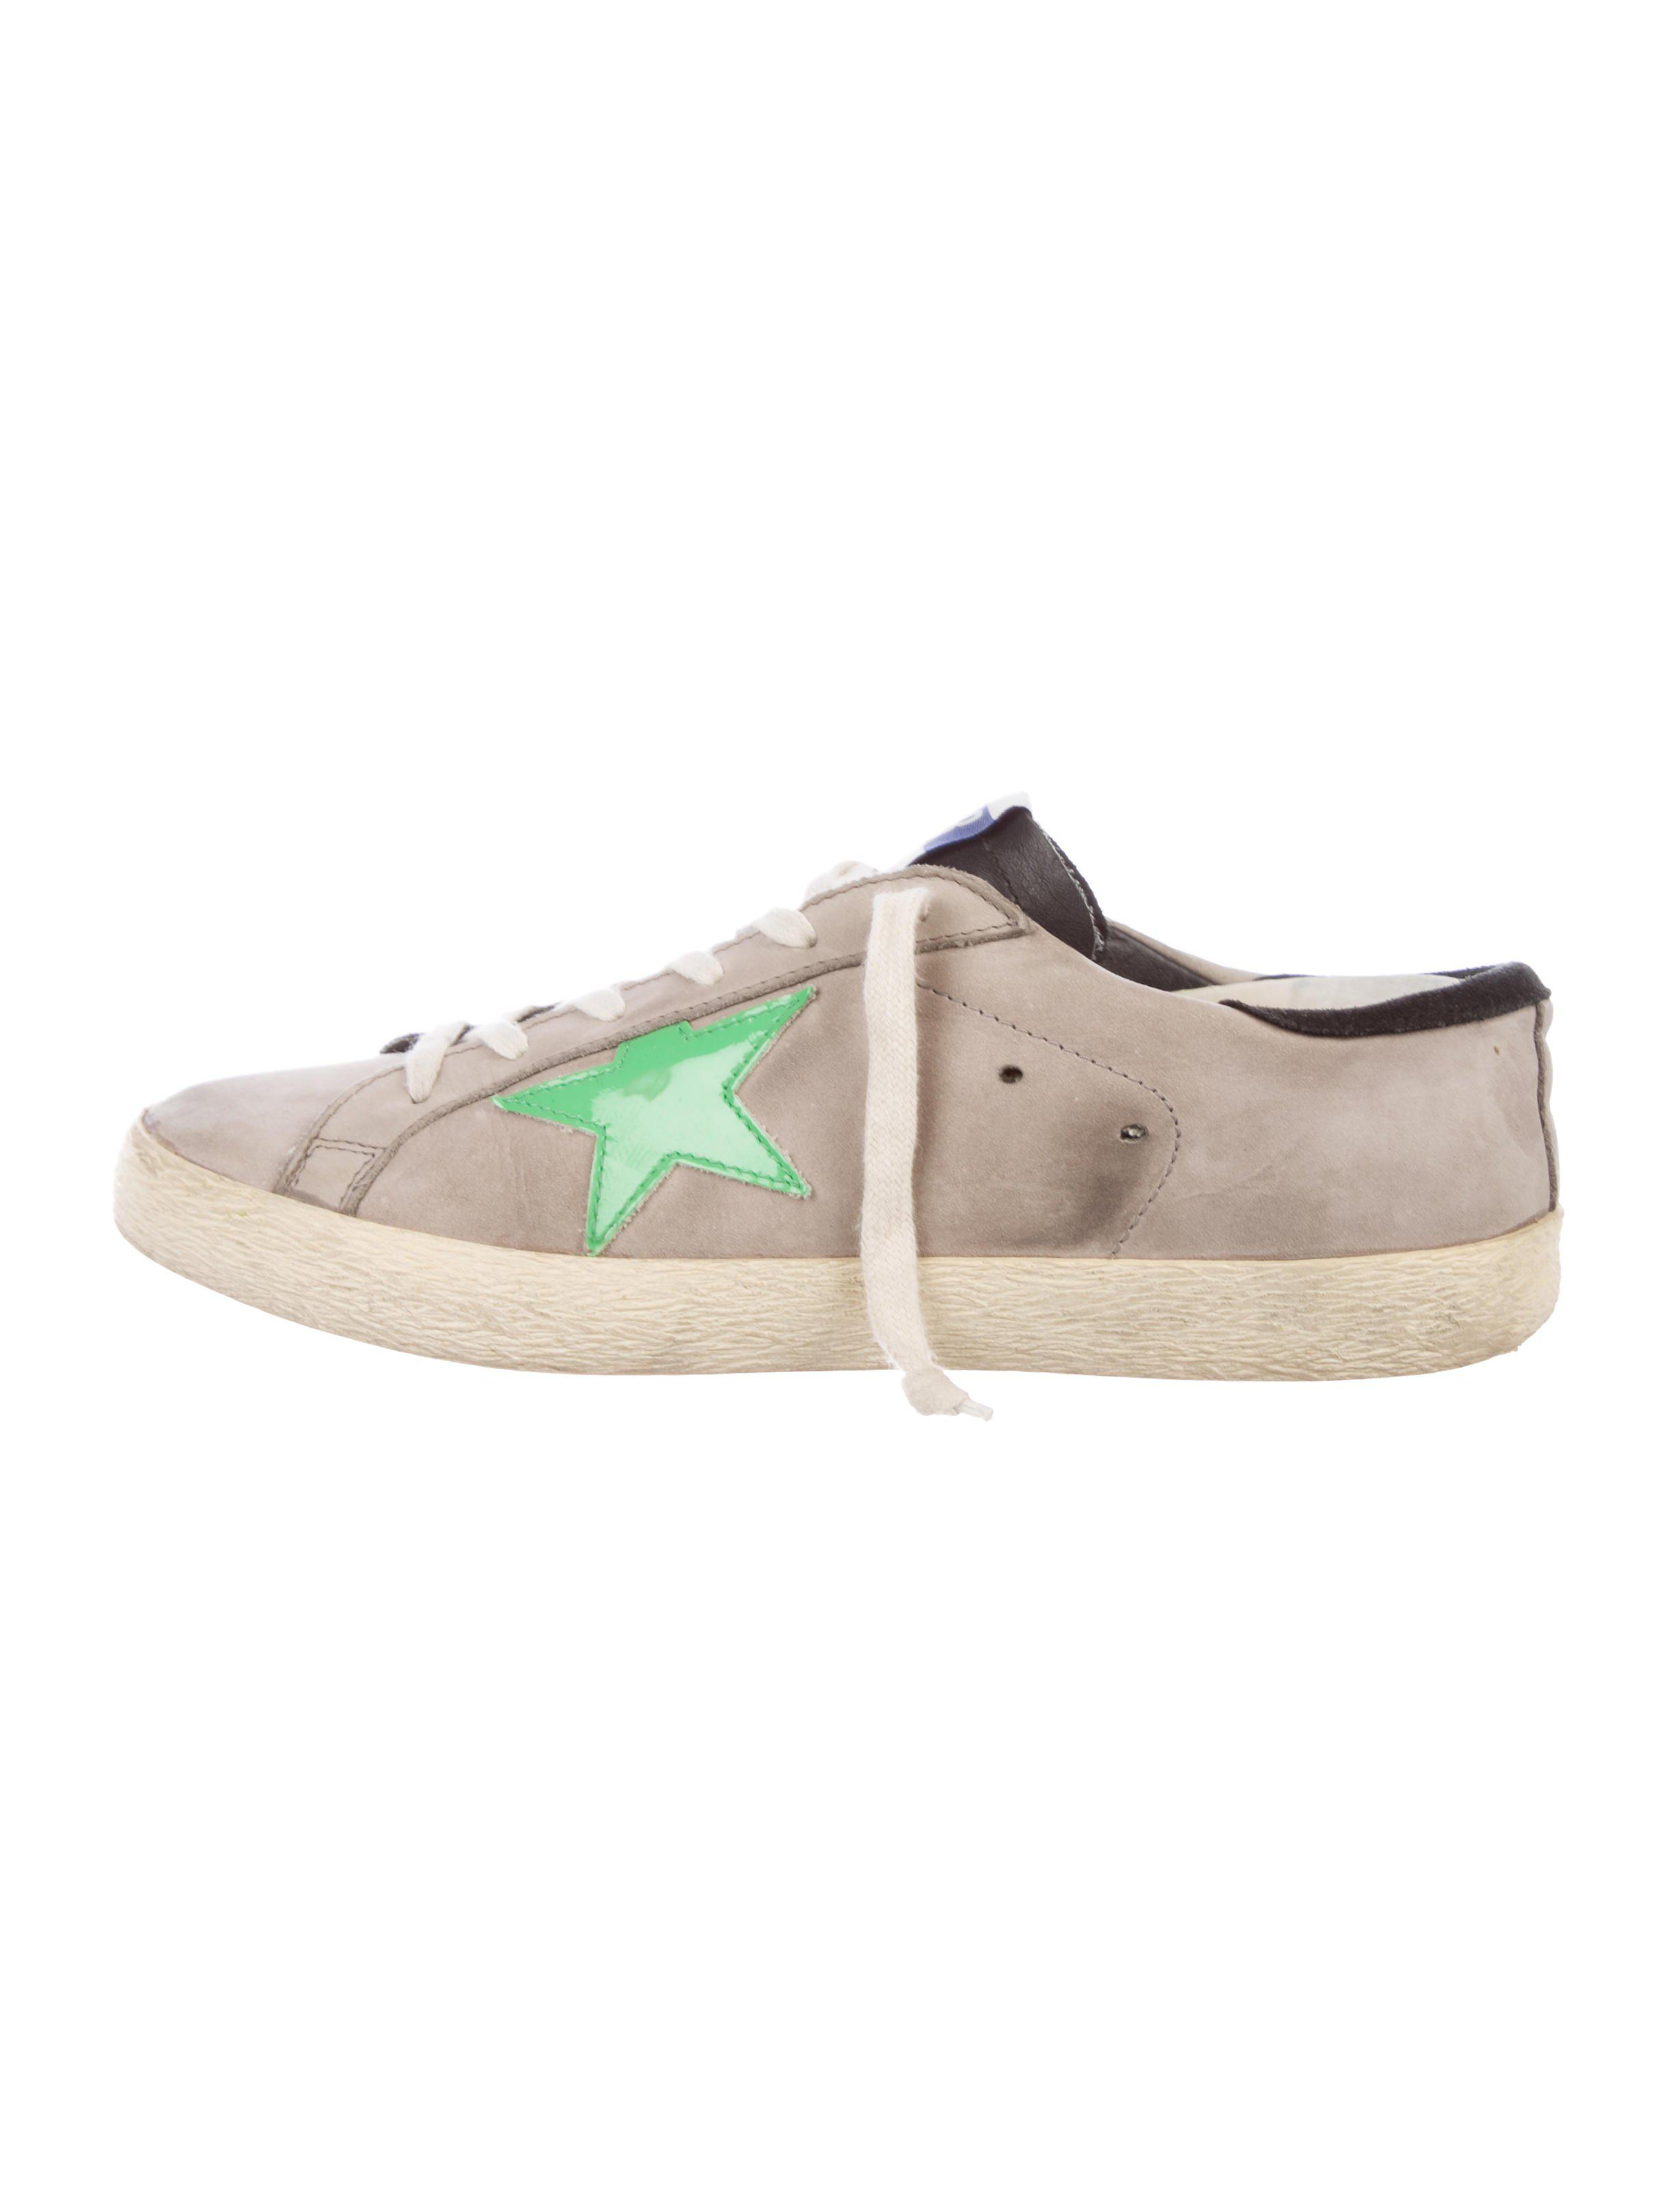 0a2df3963ce7 Golden Goose Deluxe Brand. Women s Metallic Suede Super Star Sneakers Grey